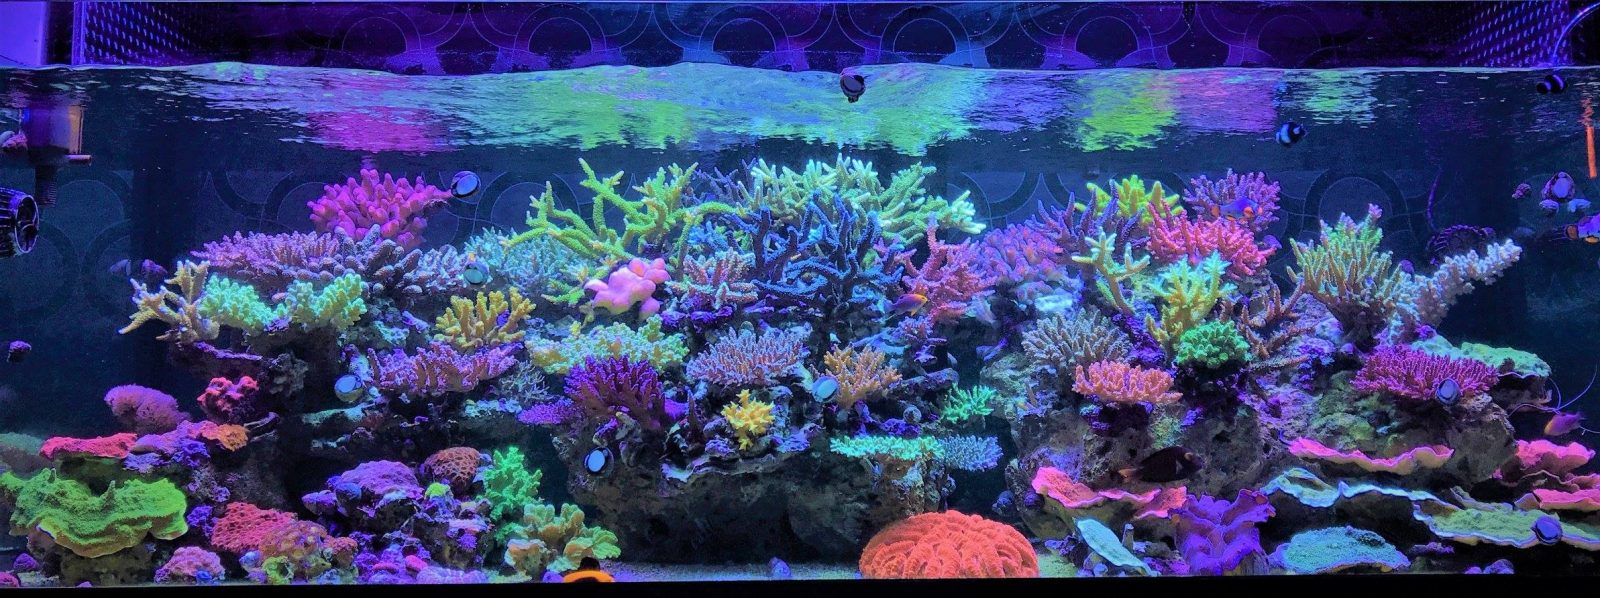 orphek aquarium lighting terbaik 2020